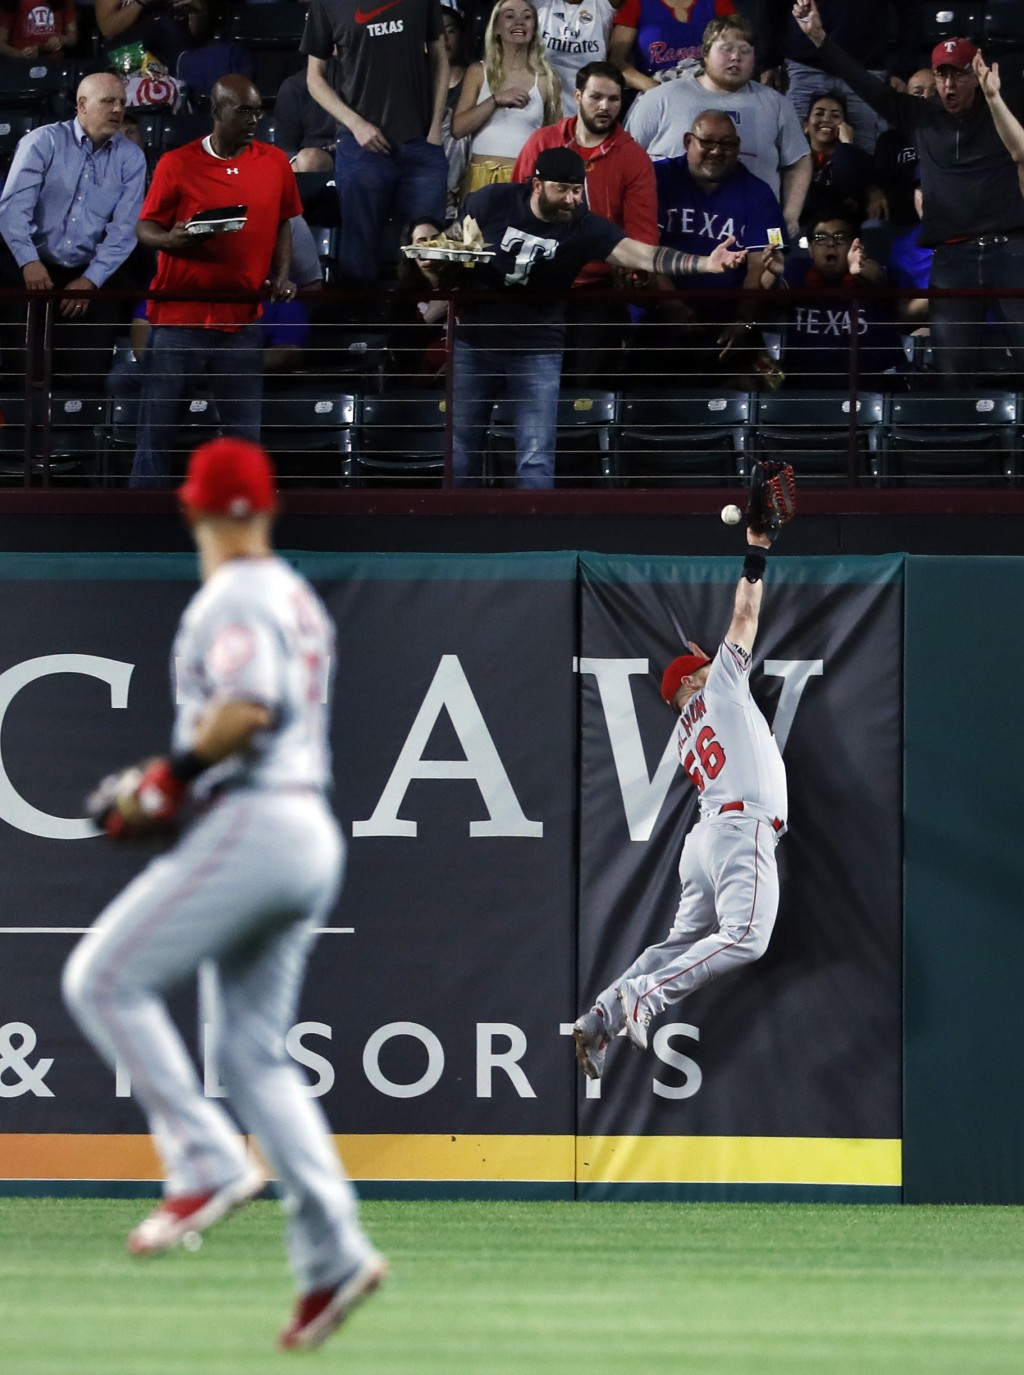 Los Angeles Angels second baseman Tommy La Stella watches as the ball glances off the glove of right fielder Kole Calhoun and falls behind the wall fo